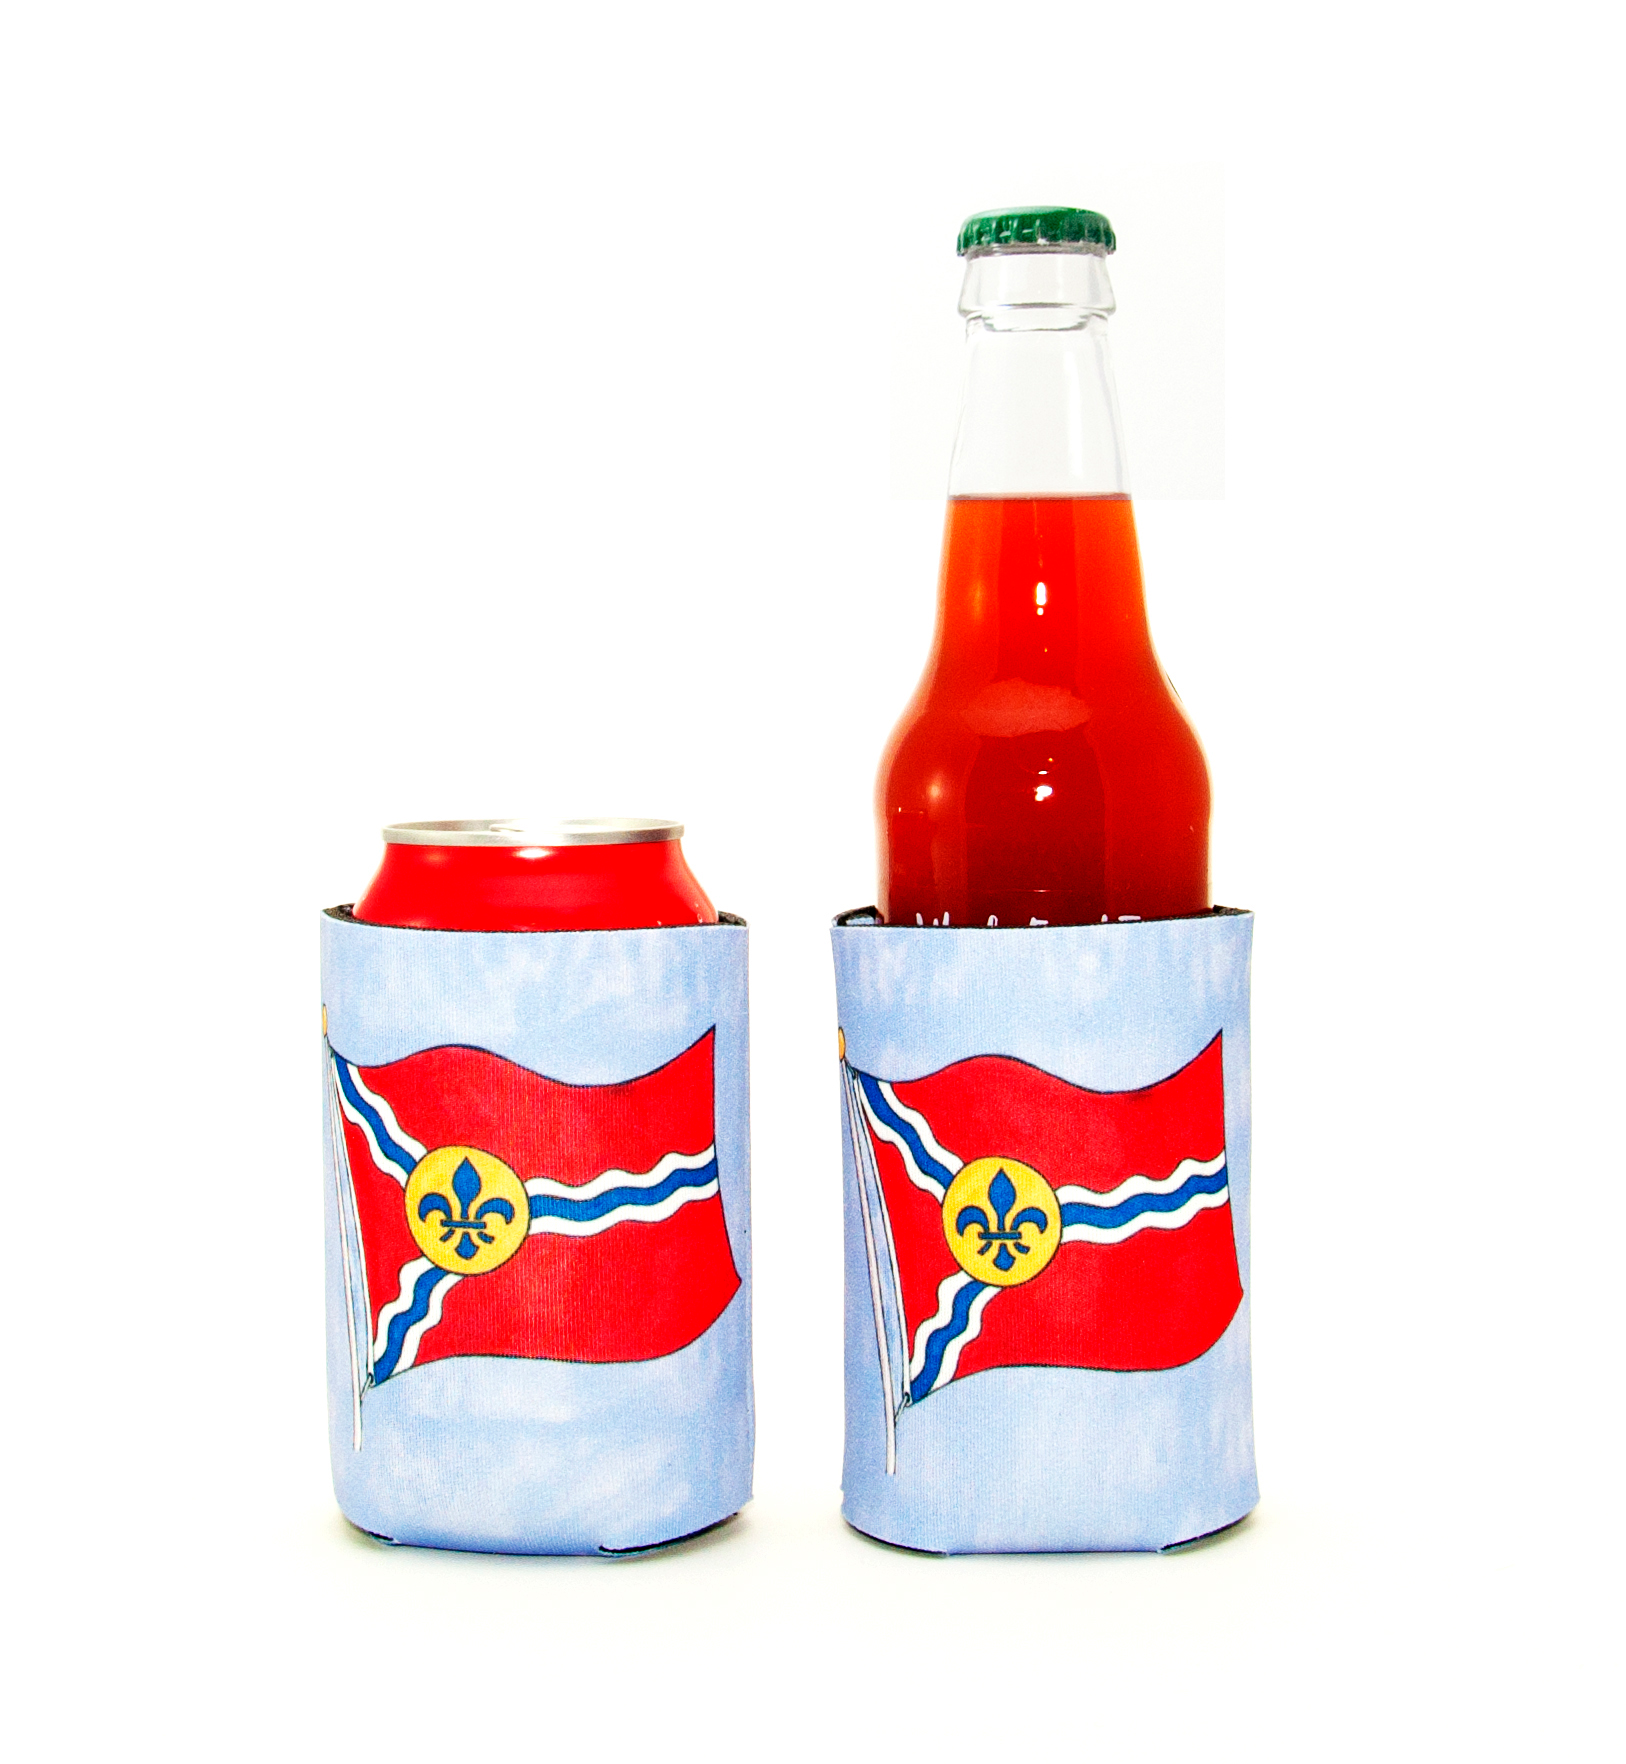 Koozies<br>St. Louis Flag Scene<br><br>Available Online and<br>at Retailers